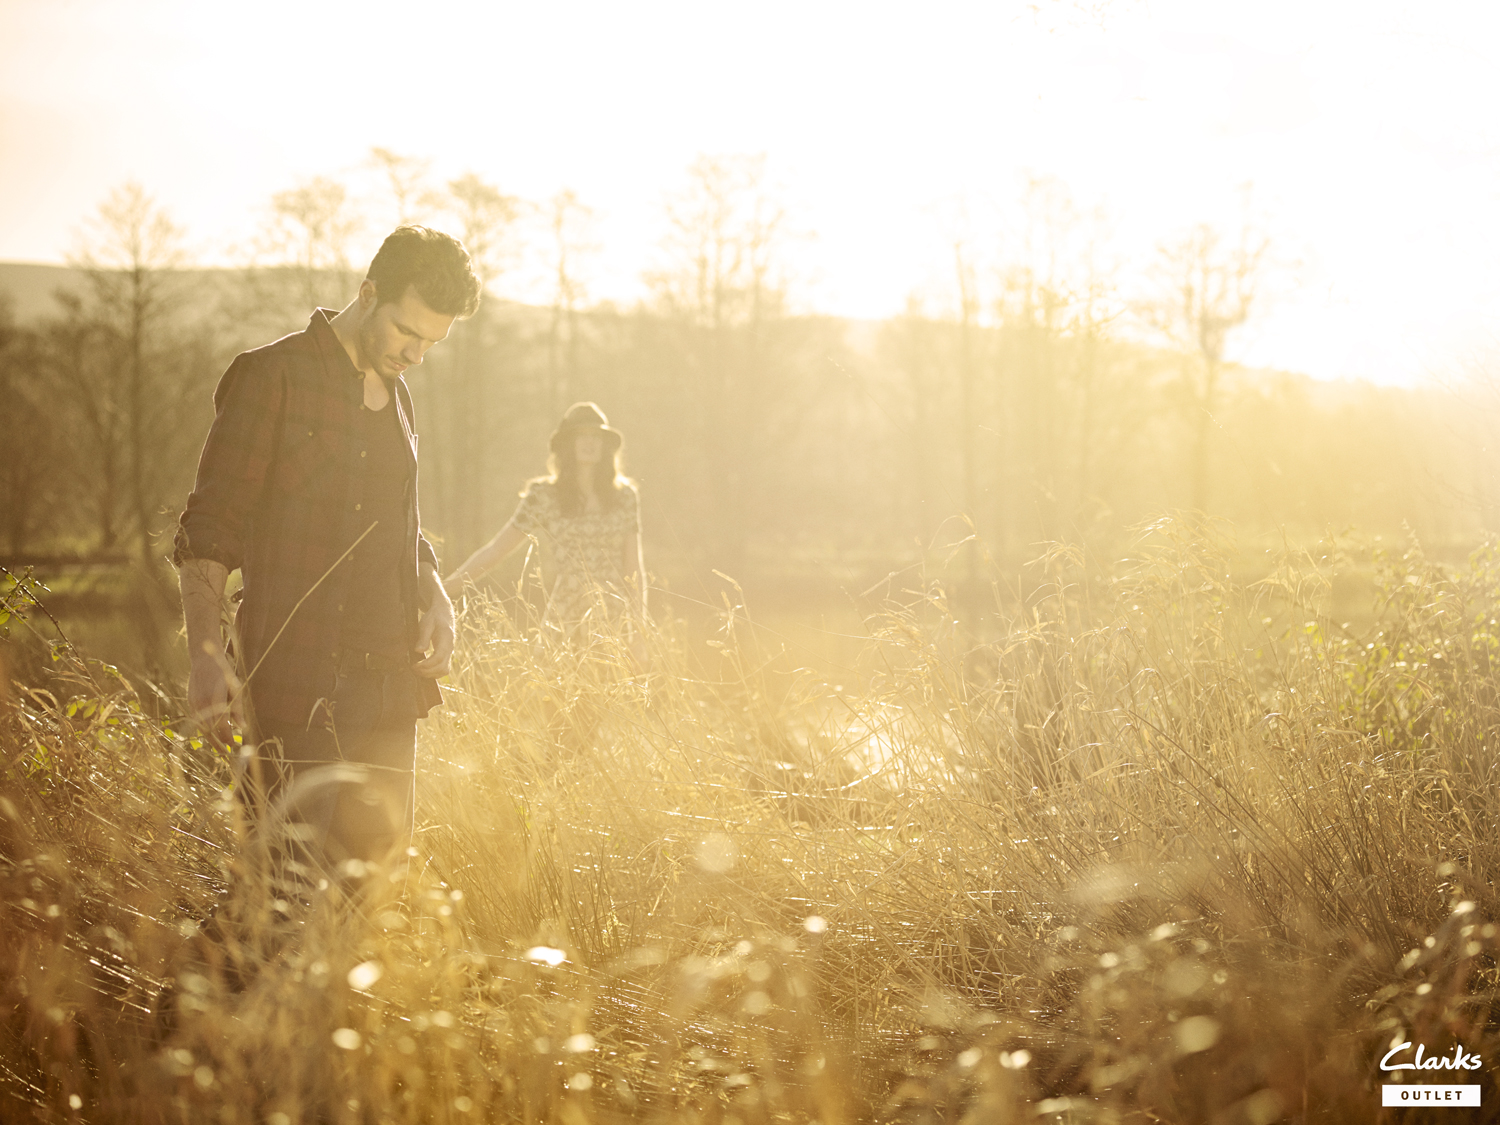 Realm-Clarks-Village-AW14-Lifestyle-Matt-Stansfield-Photographer